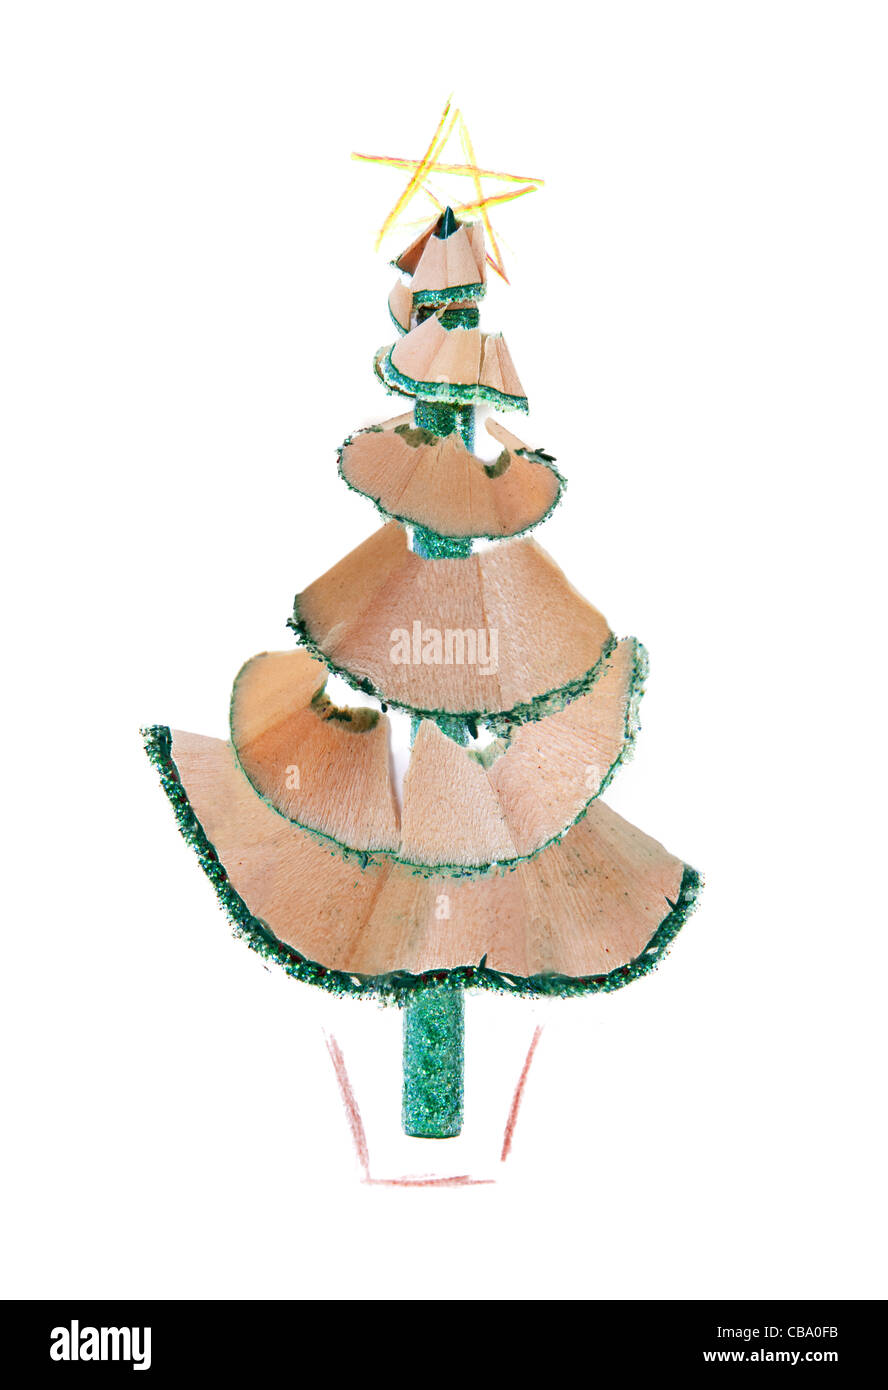 Office Christmas Tree, made out of a pencil and sharpening a coloured pencil and crayon drawings to finish it off - Stock Image